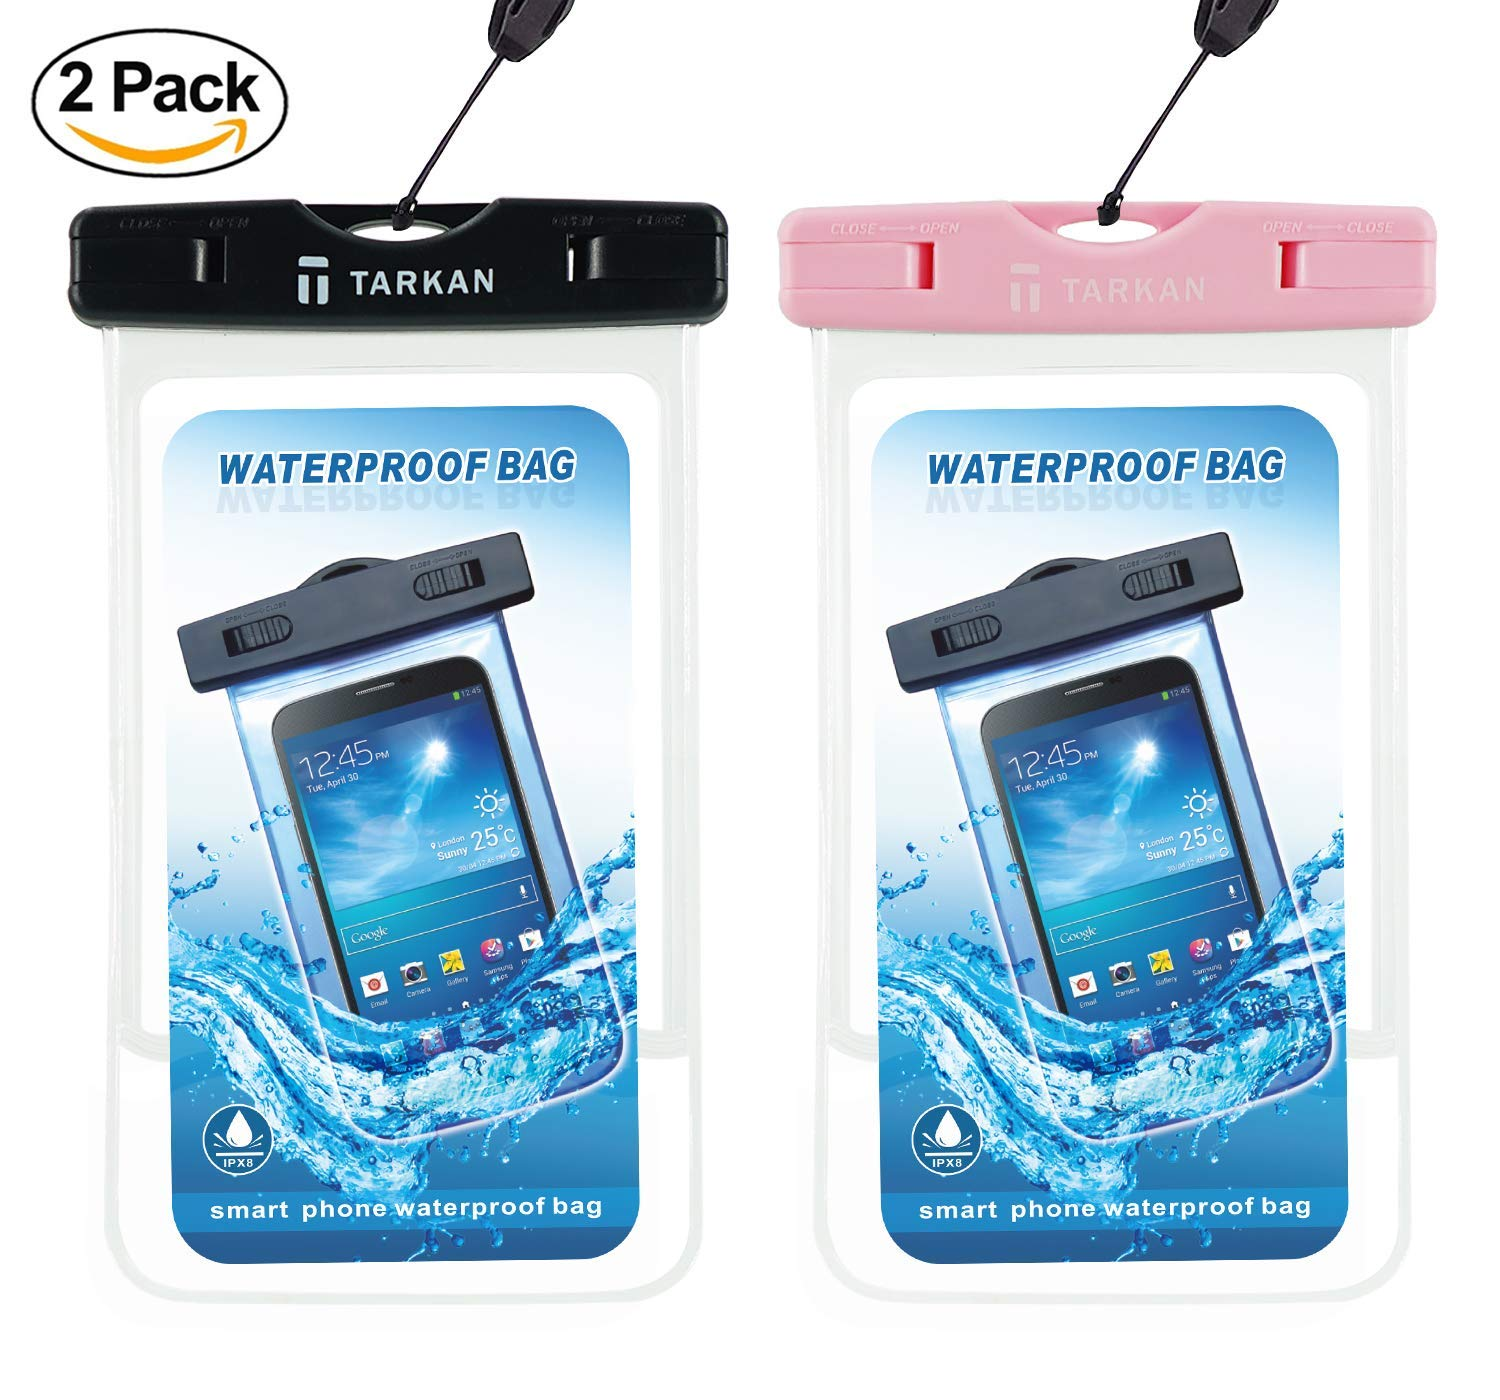 premium selection 9e30a af1a6 Tarkan Matte Universal Waterproof Case, IPx8 Phone Pouch for Swimming,  Hiking, Biking, Underwater, Rain Fits Upto 6.5 Inch Mobiles (2 Pack -  Black, ...